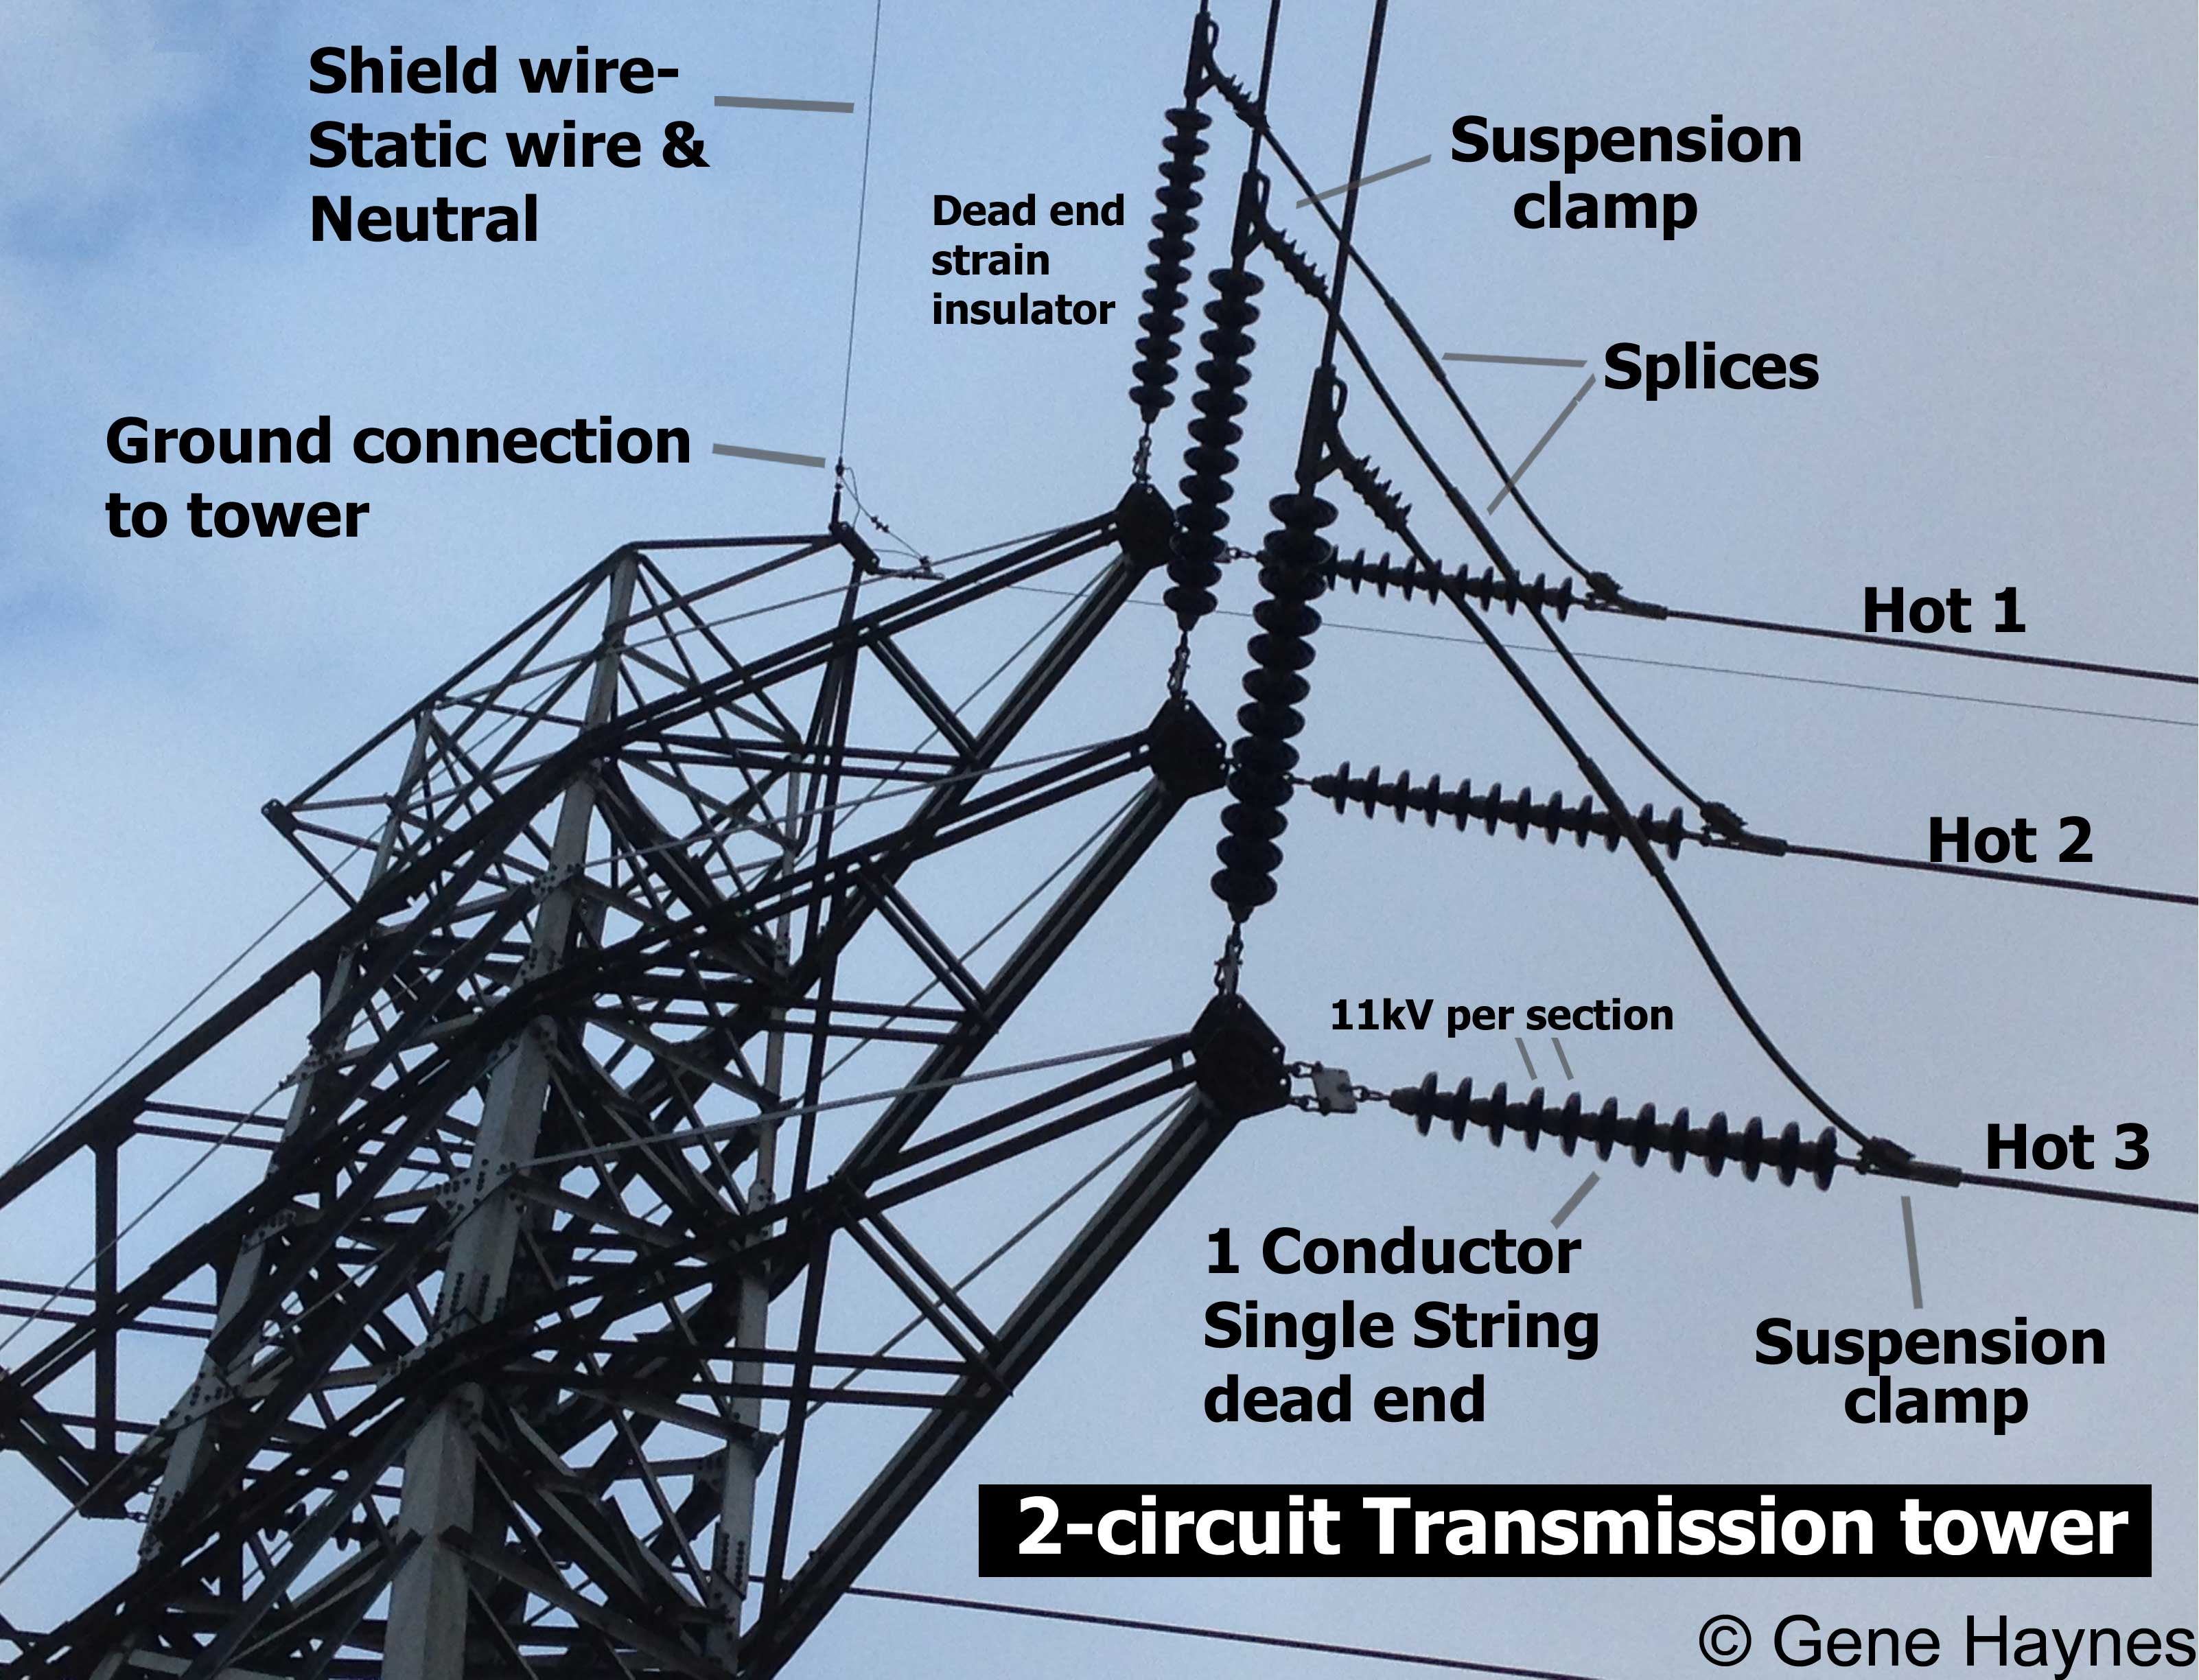 Transmission lines hook up